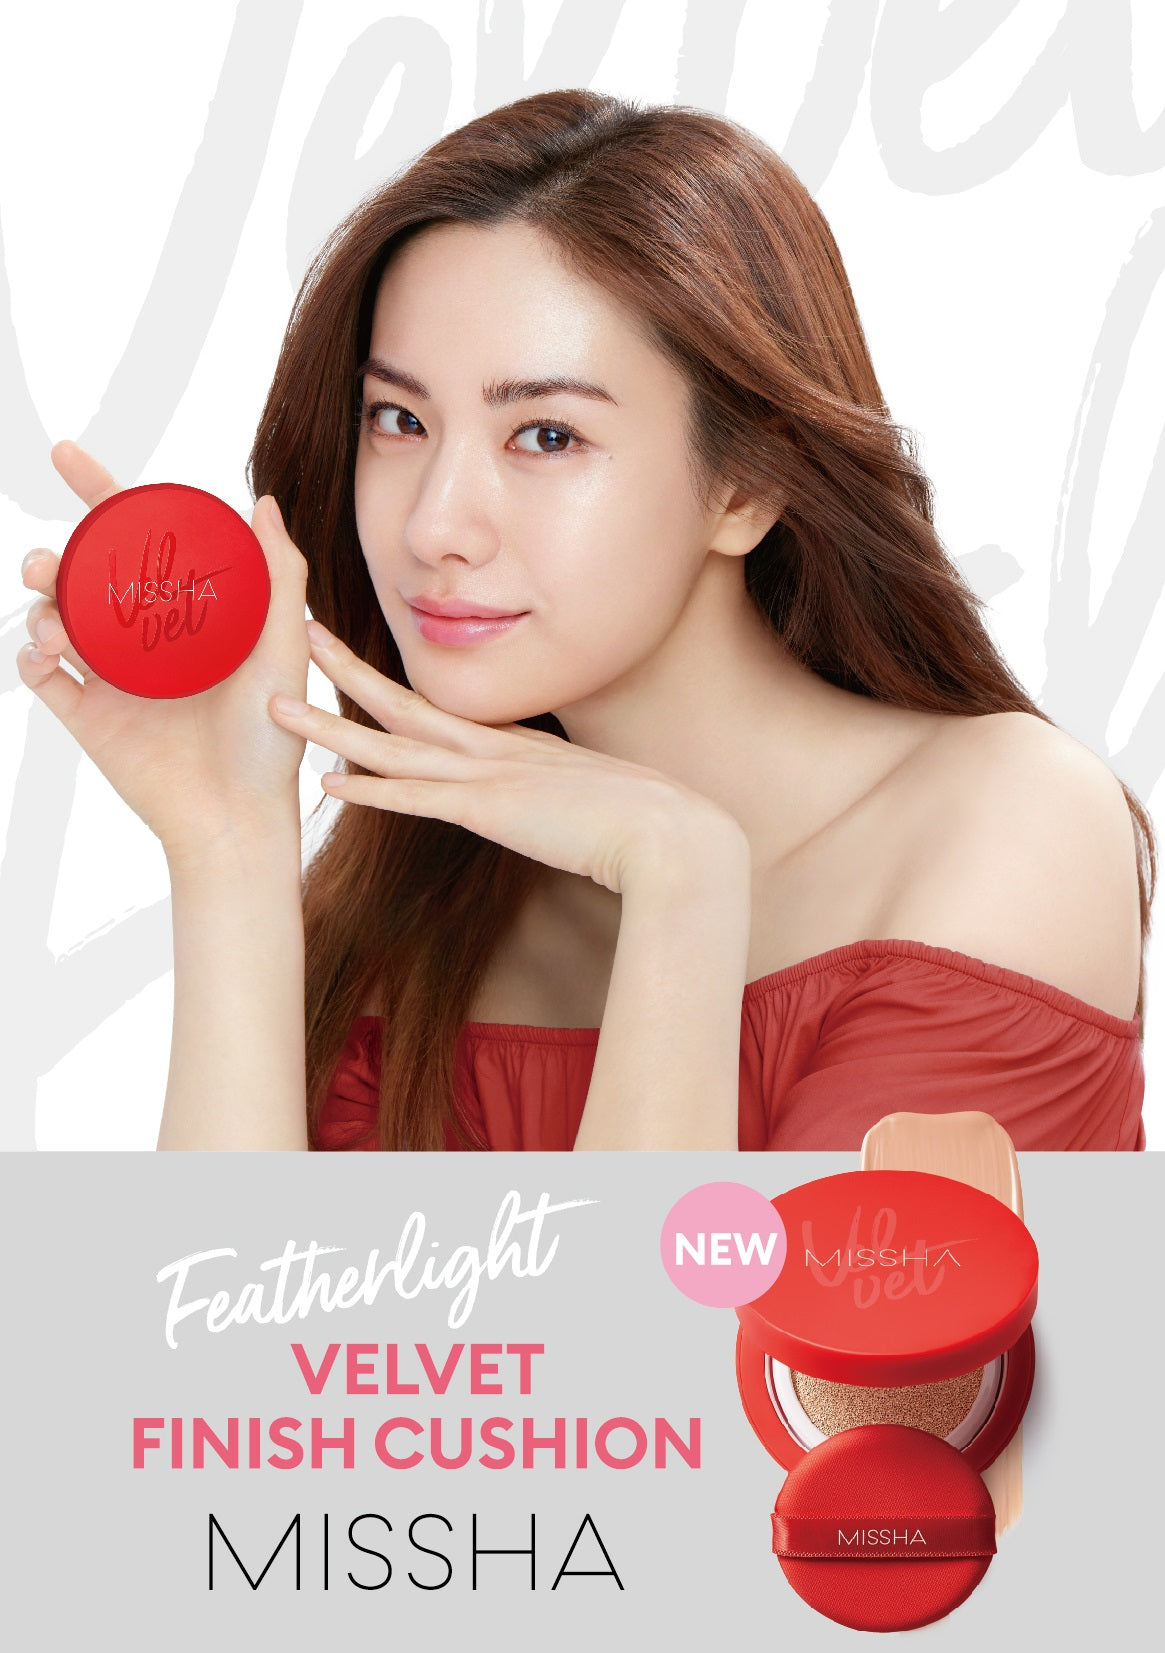 MISSHA Velvet Finish Cushion Collection